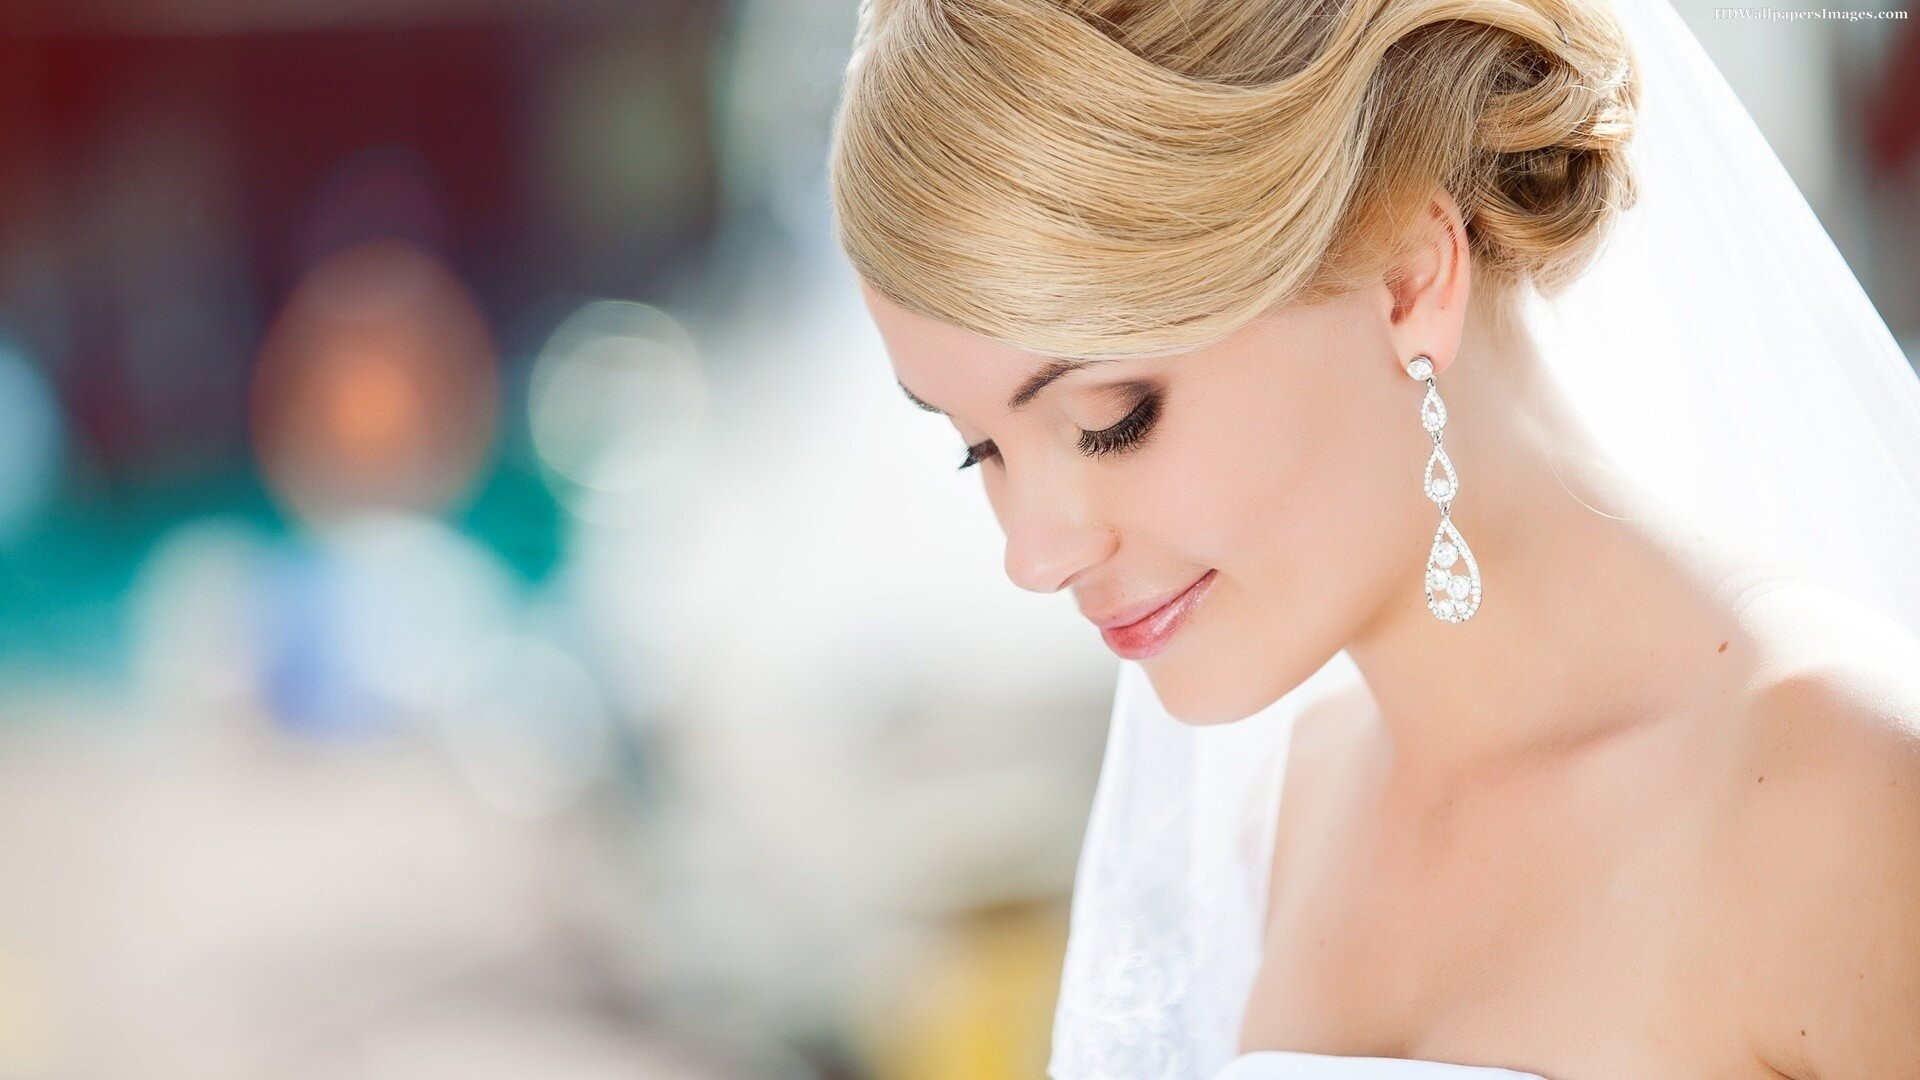 Day Bridal Contract Makeup